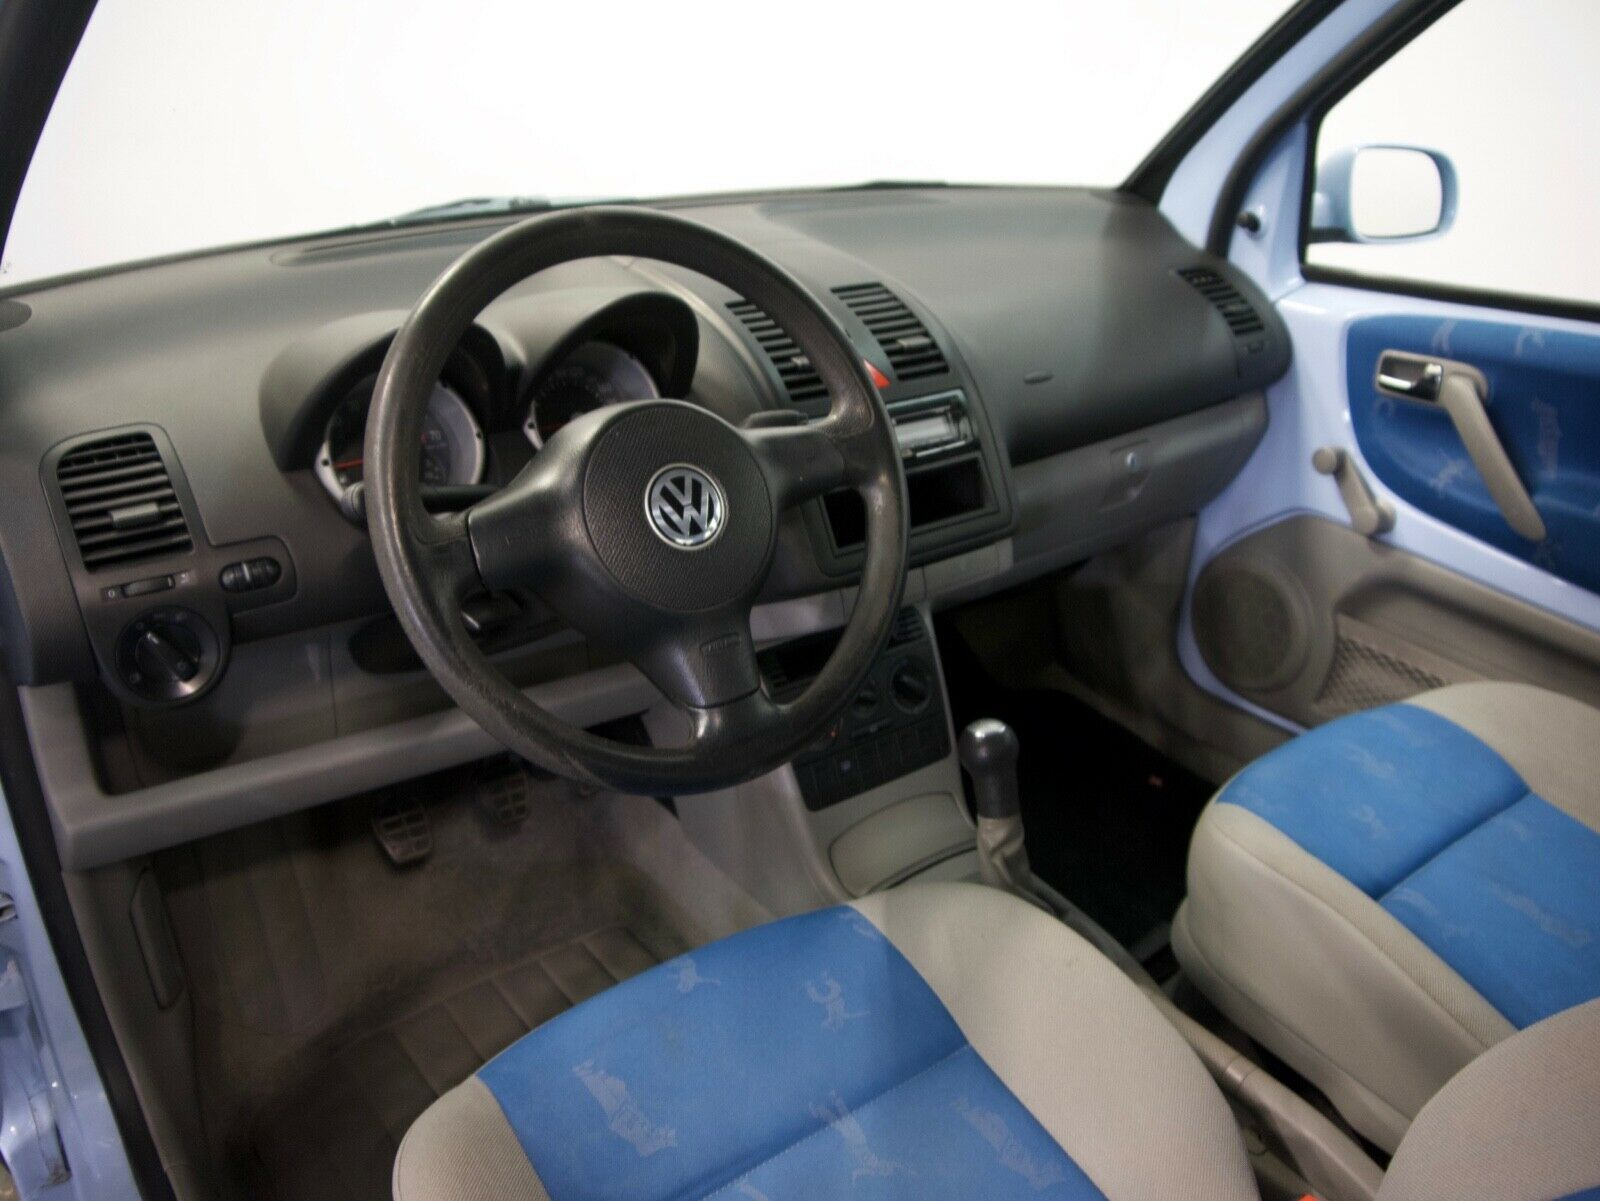 VW Lupo College 1.0